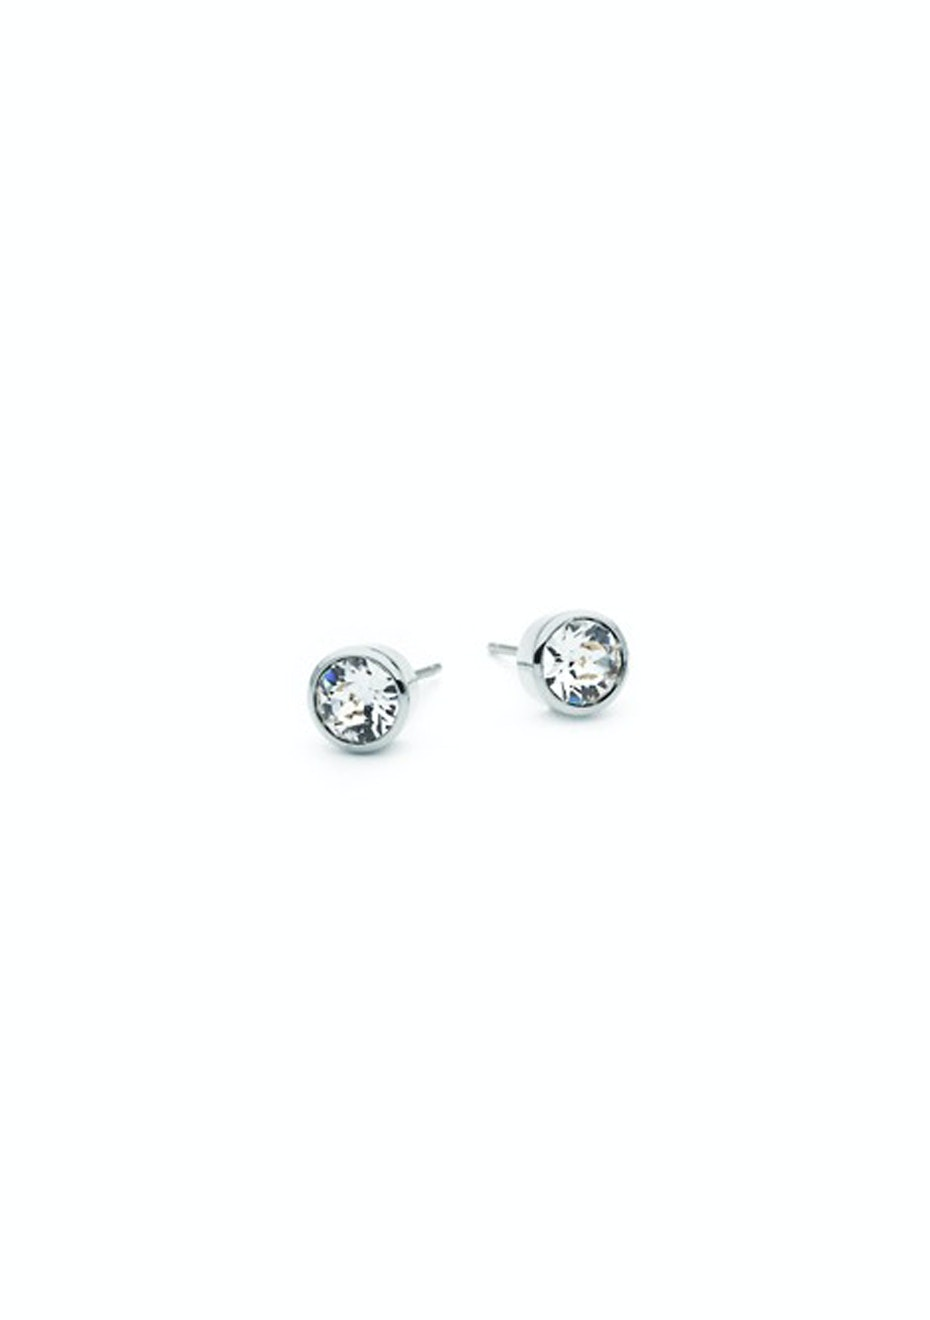 Stud Earrings Embellished with Crystals from Swarovski